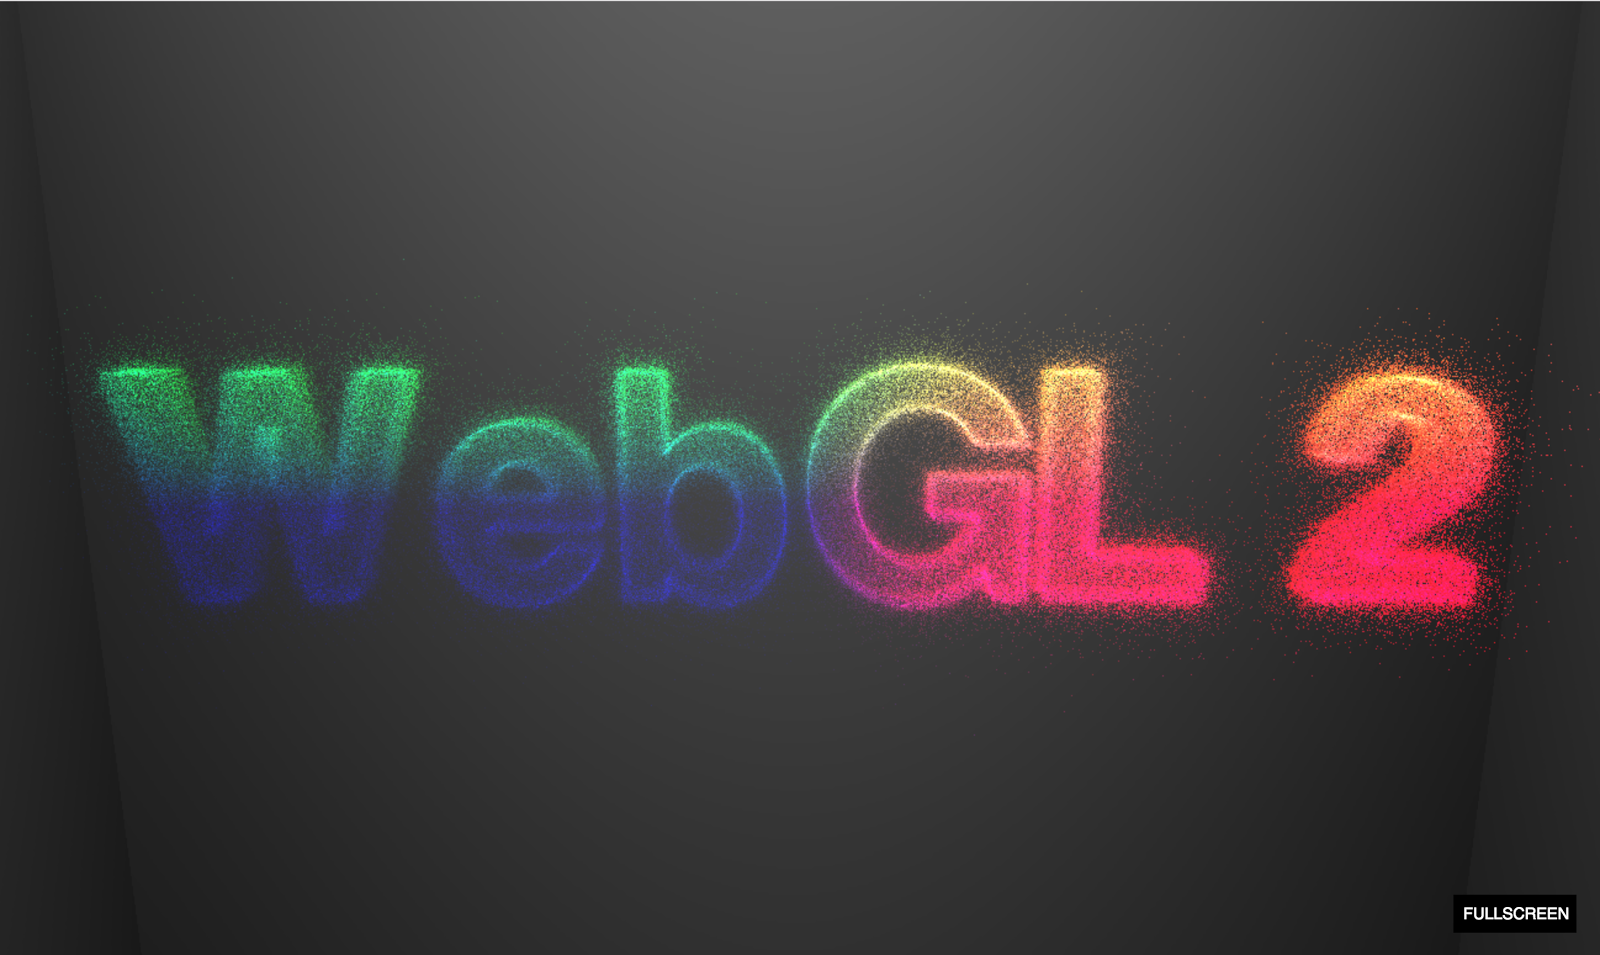 WebGL 2.0 Transform in Chrome 56